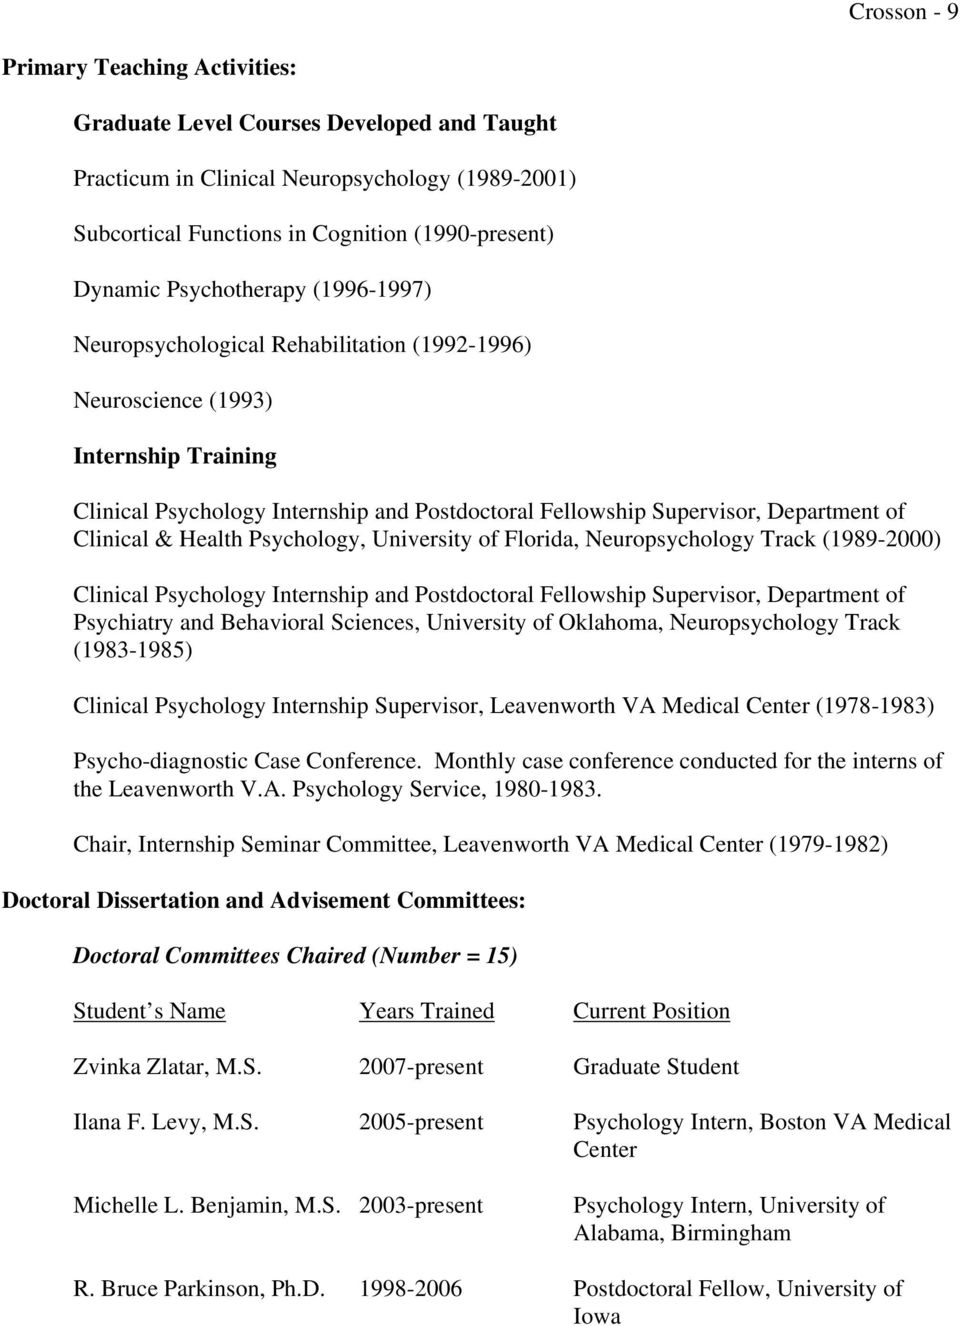 Clinical & Health Psychology, University of Florida, Neuropsychology Track (1989-2000) Clinical Psychology Internship and Postdoctoral Fellowship Supervisor, Department of Psychiatry and Behavioral